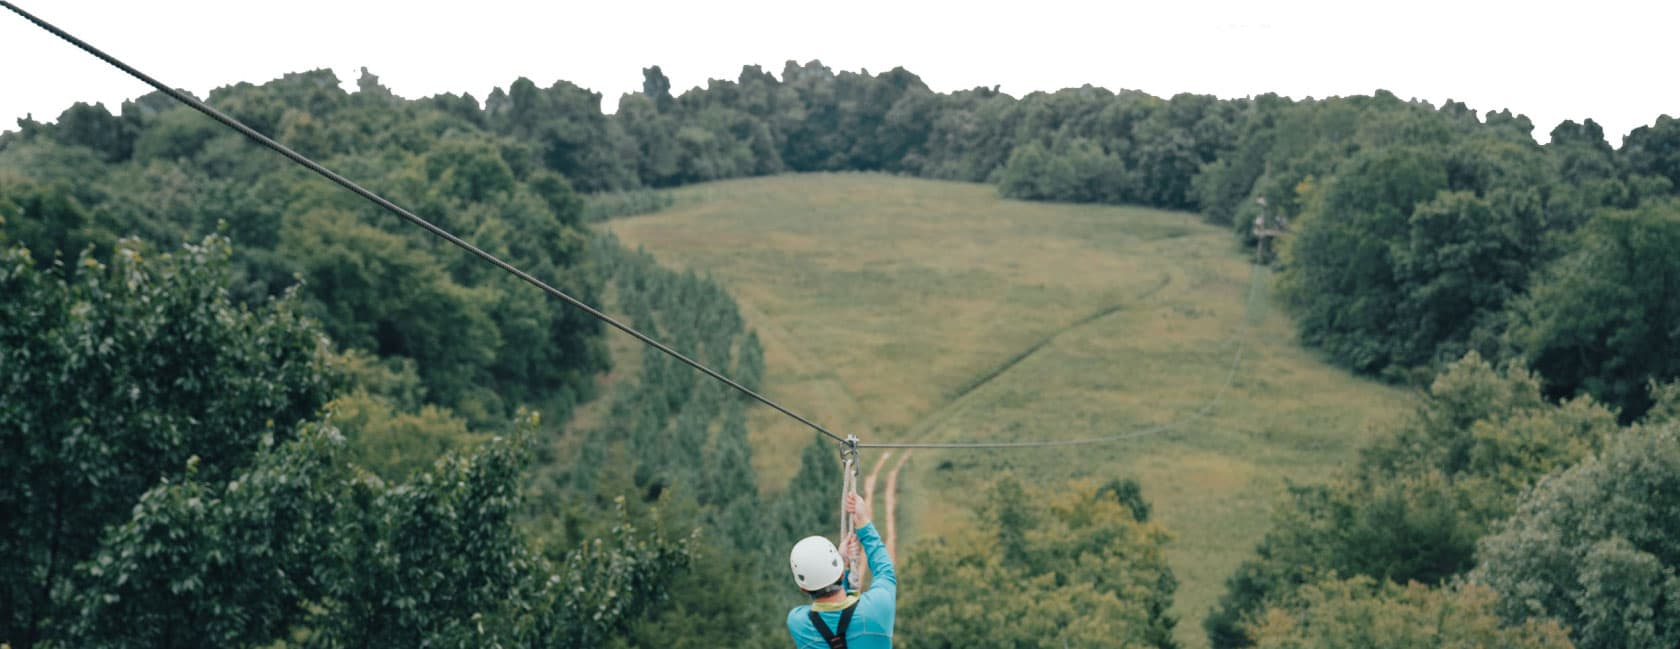 guest on the zip line